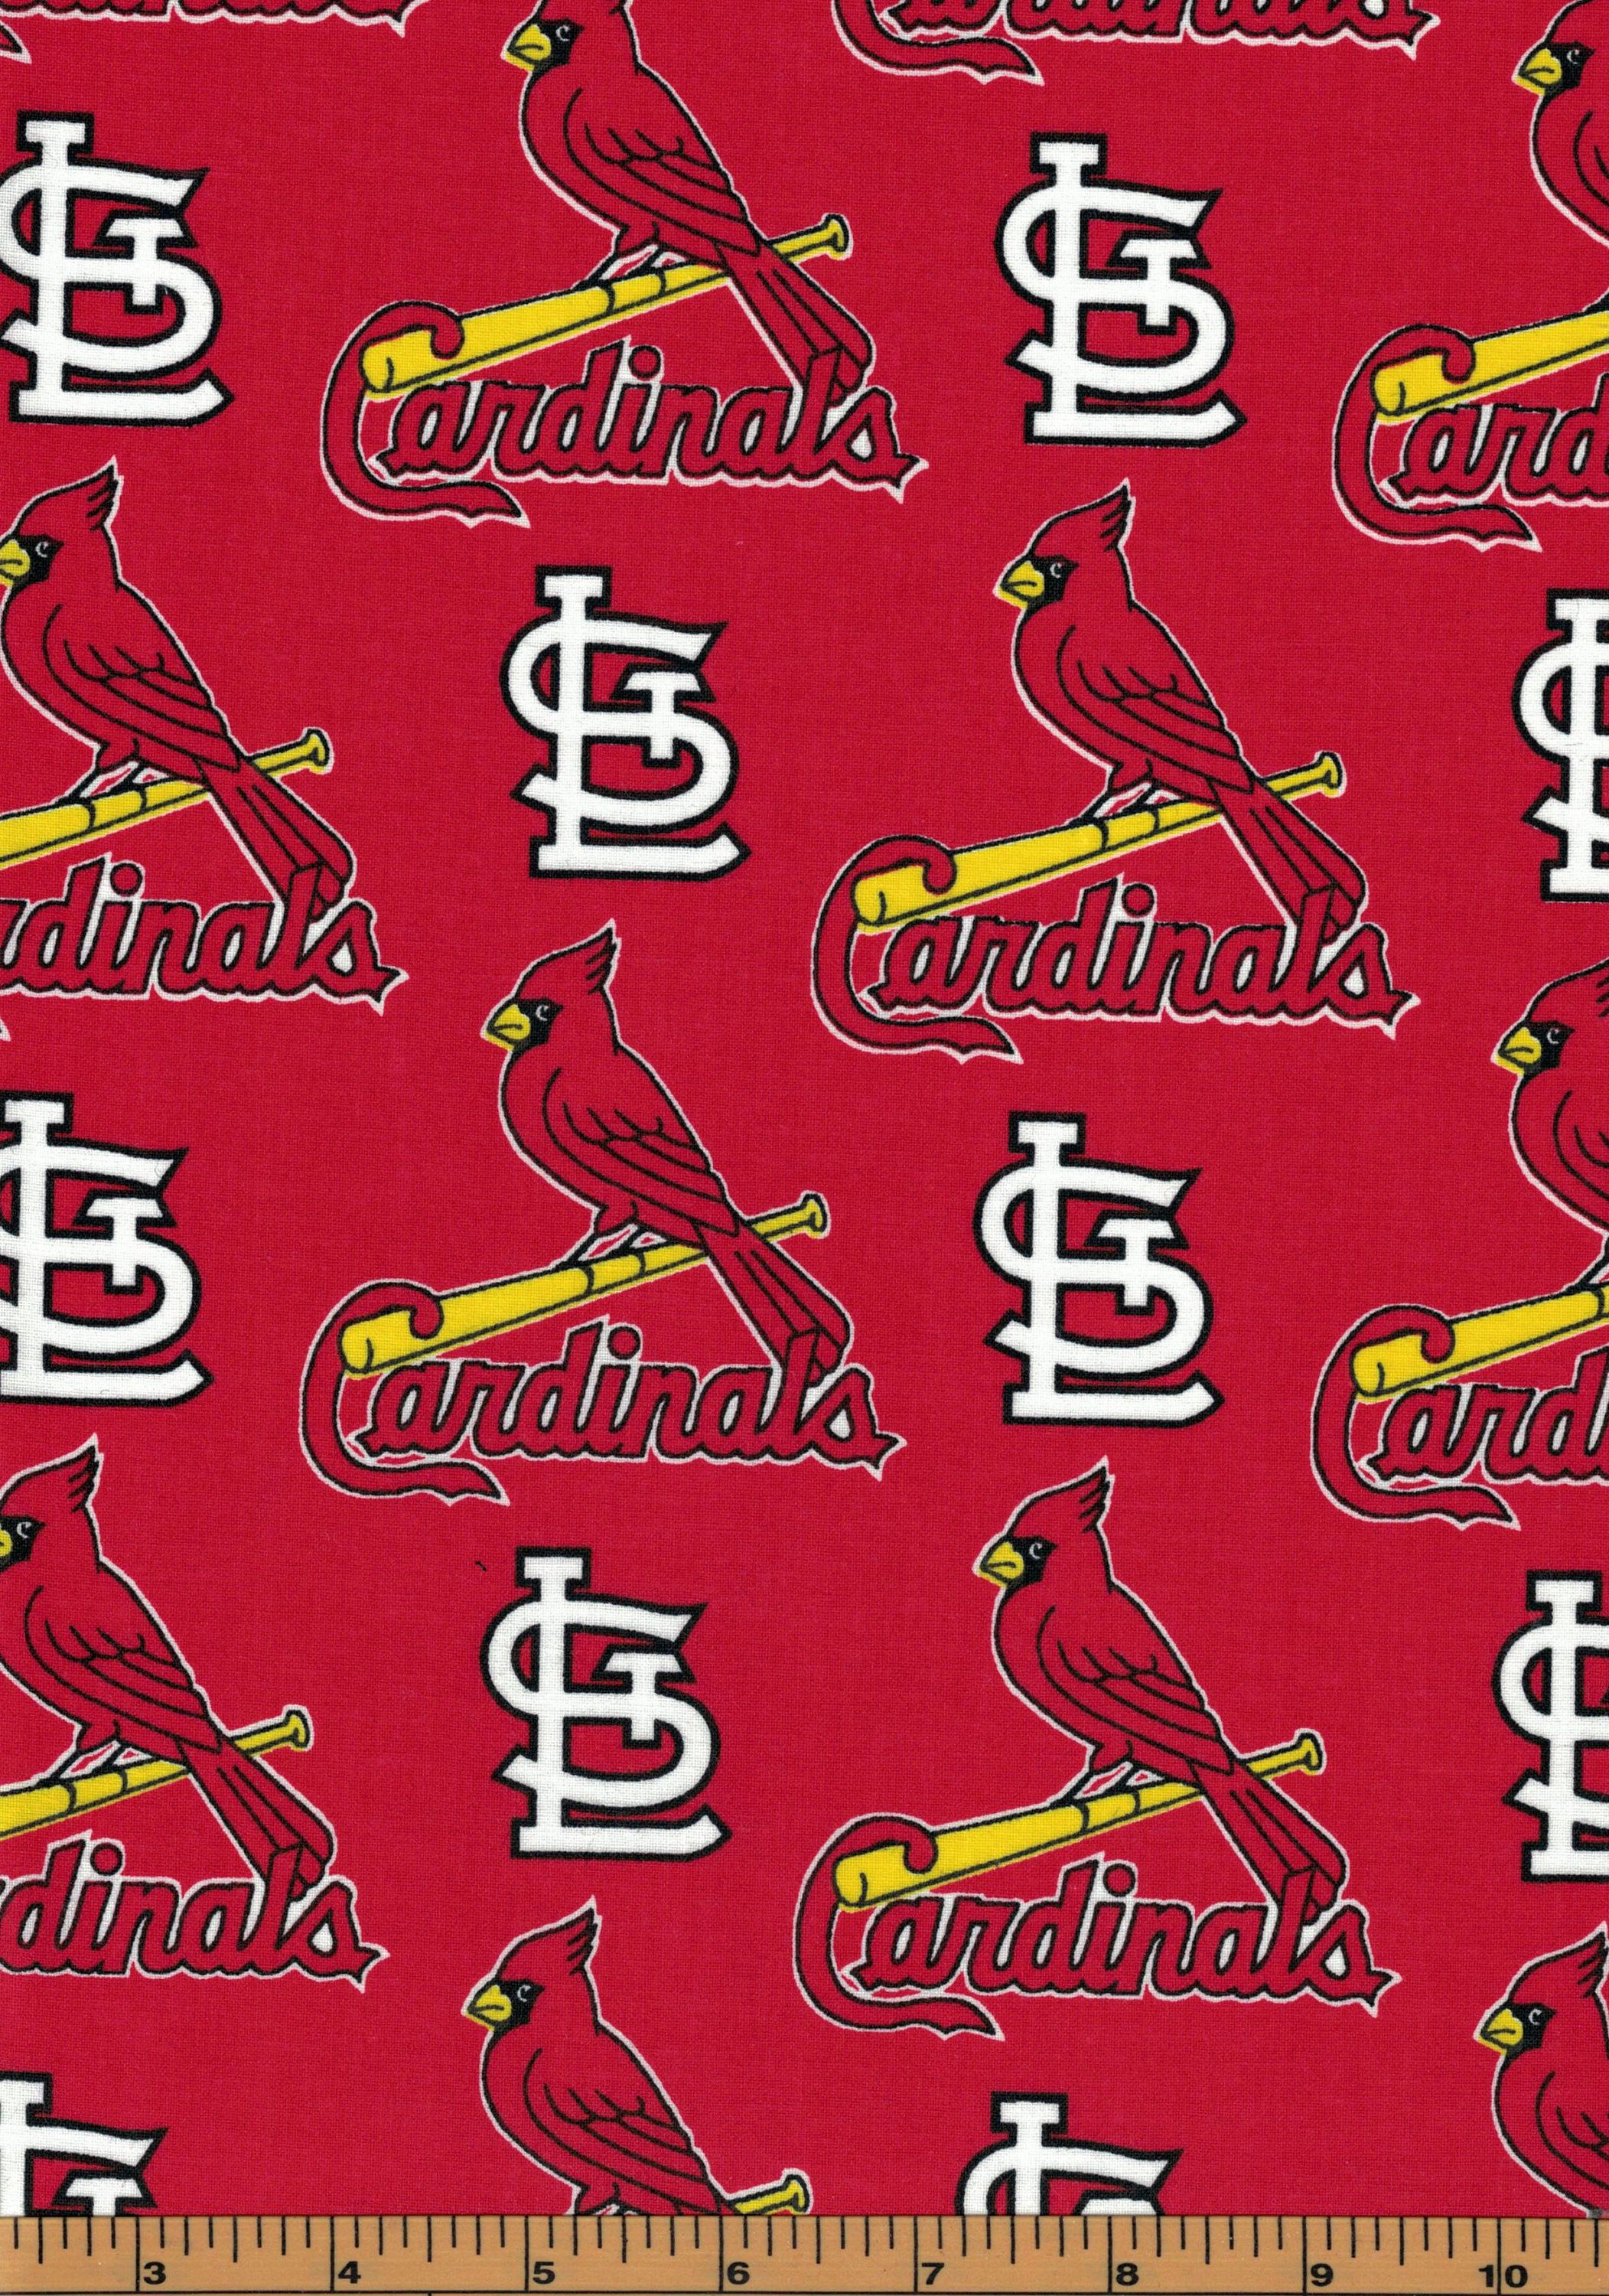 size 40 8be5e c35bd St. Louis Cardinals Baseball Fabric- MLB - 100% Cotton High Quality Fabric-  by Fabric Traditions by QuiltsOnTheFly on Etsy